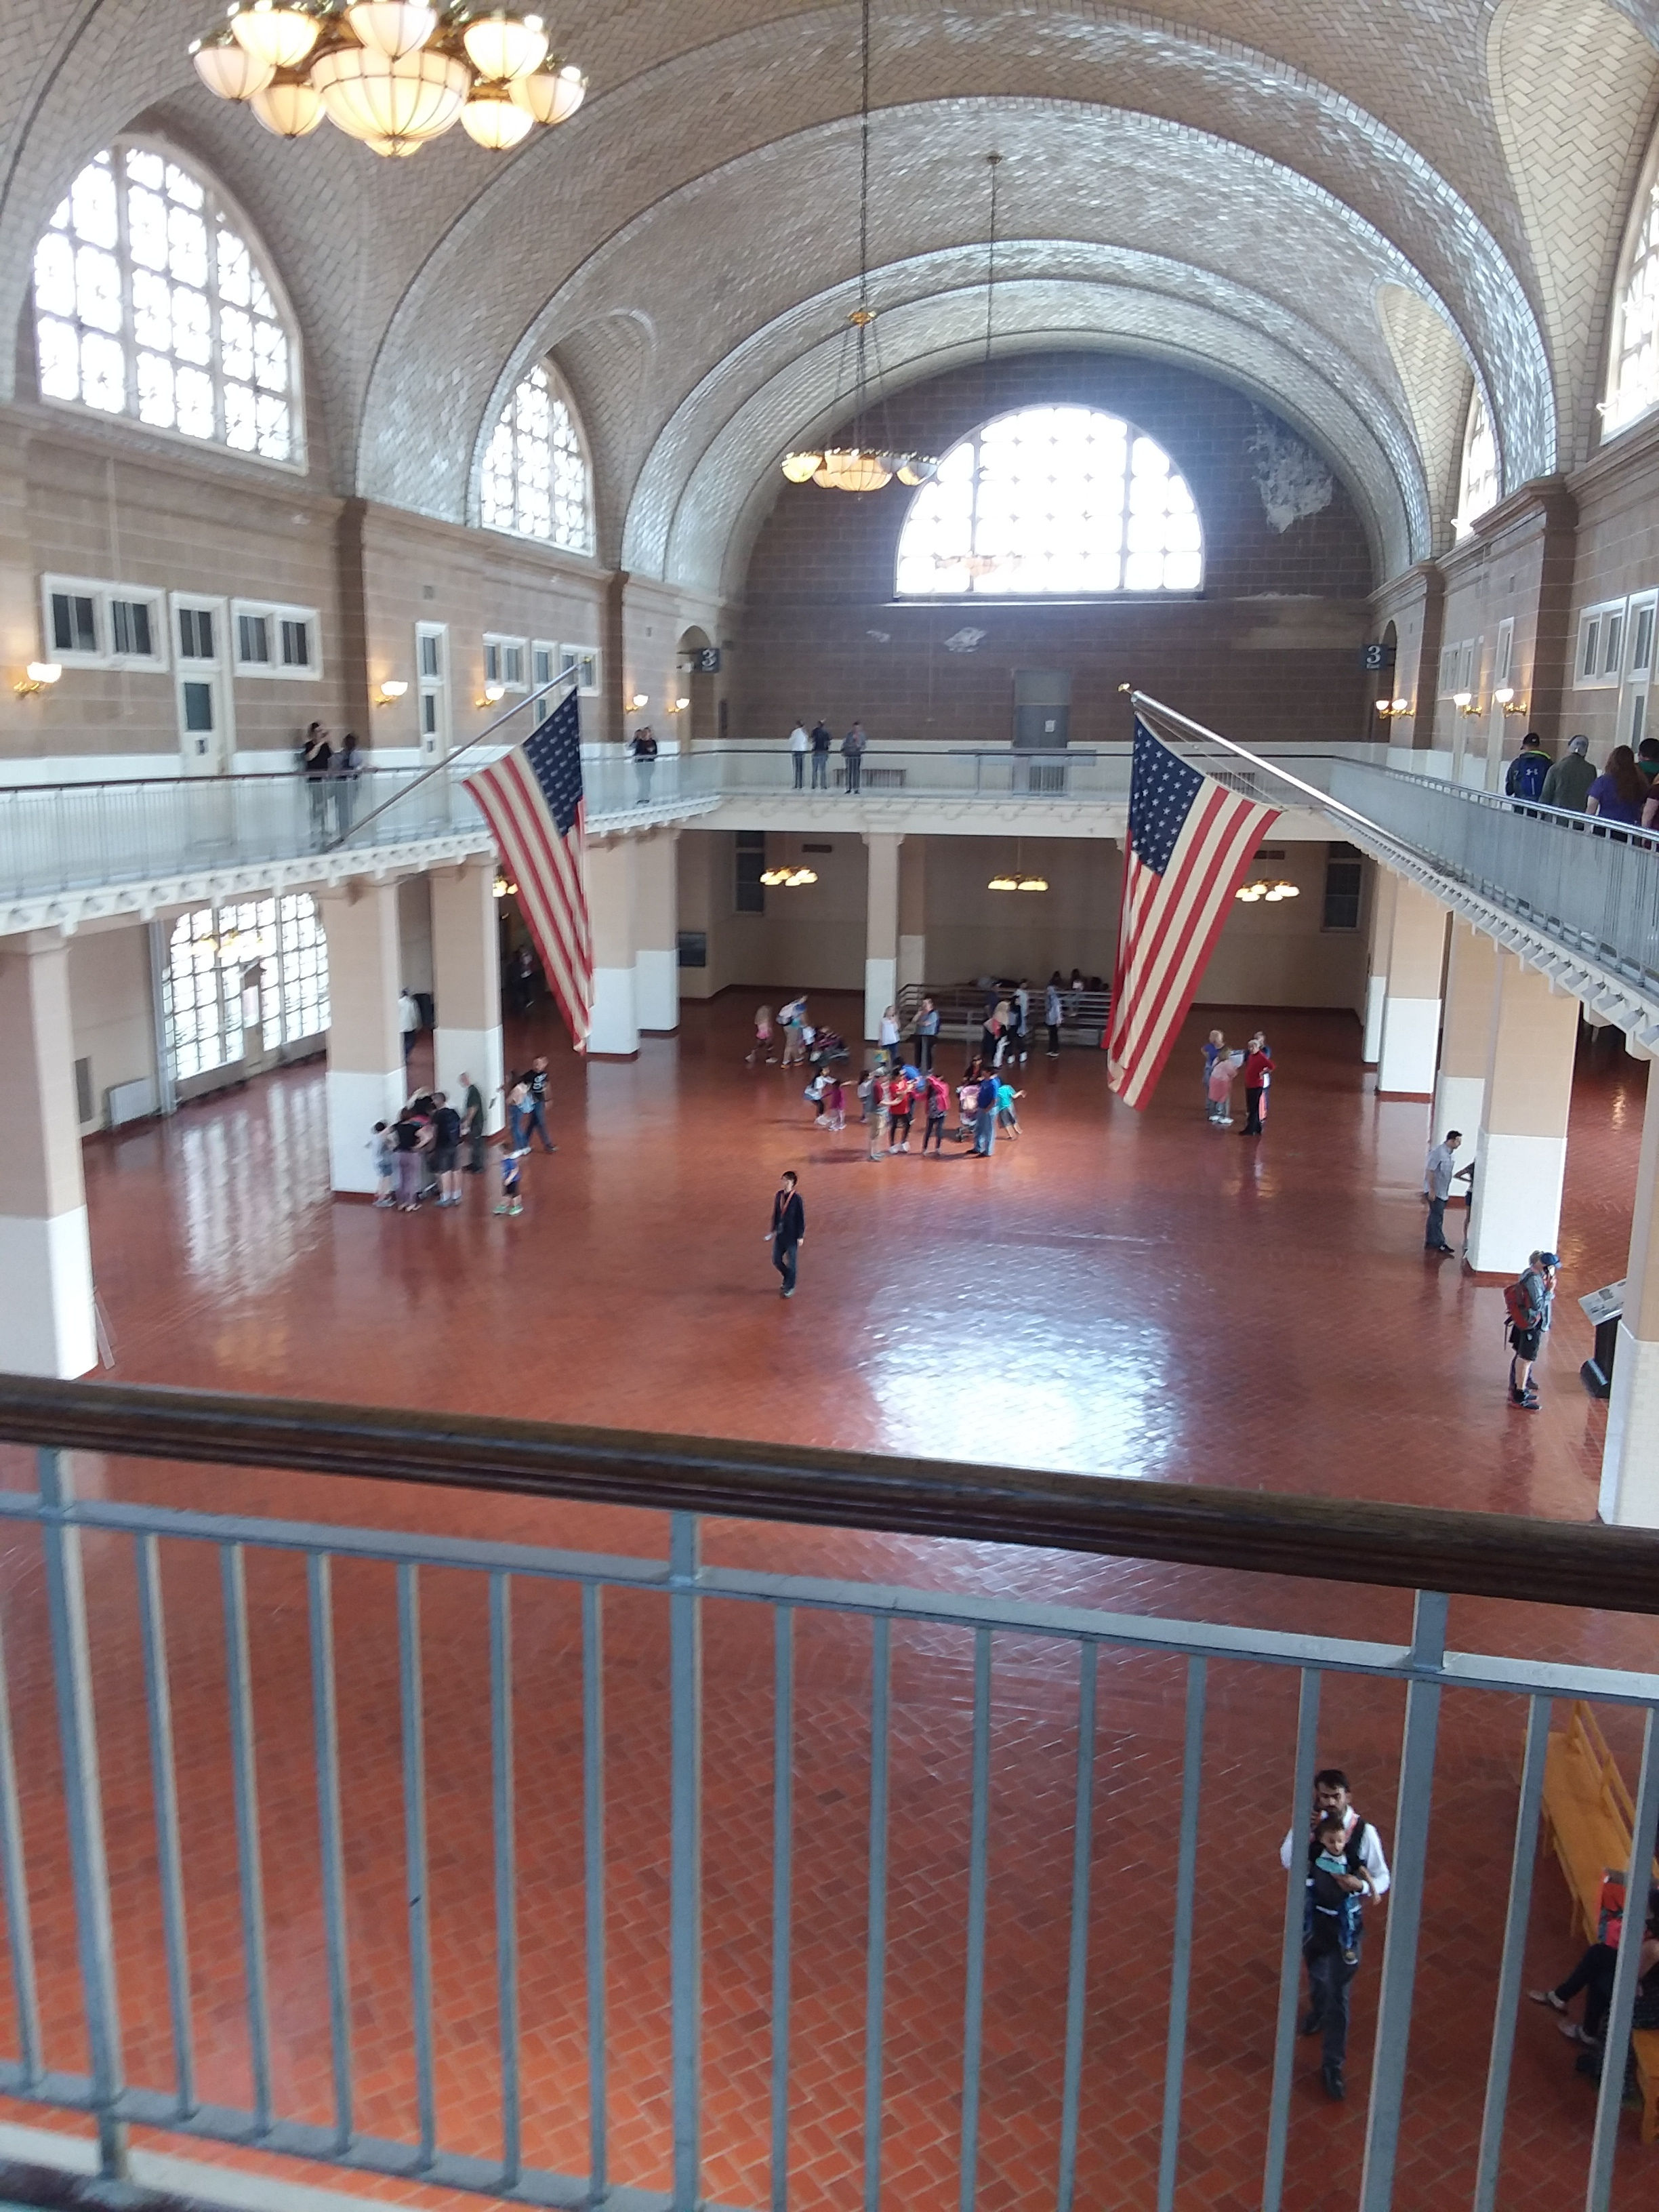 The Registry Room, on Ellis Island, where immigrants would line up for their hoped-for approval to enter America